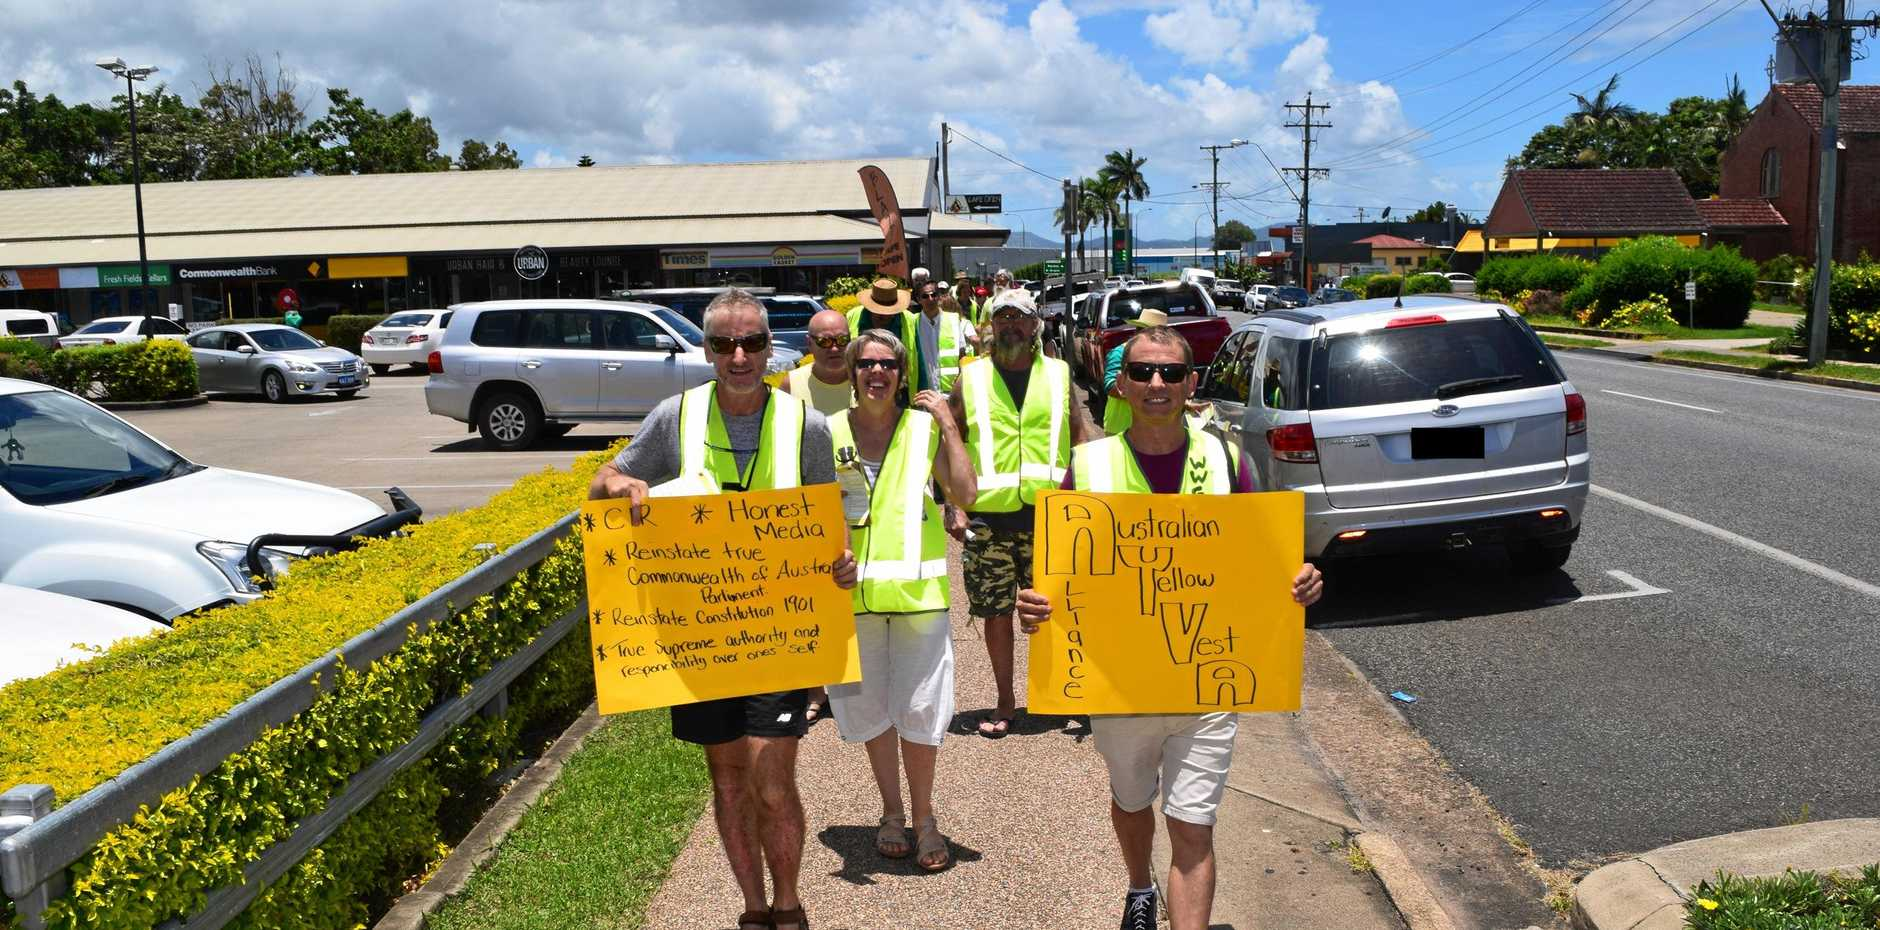 PROTEST: Yellow Vest protests sweeping across Europe have inspired Whitsunday residents to invoke change.